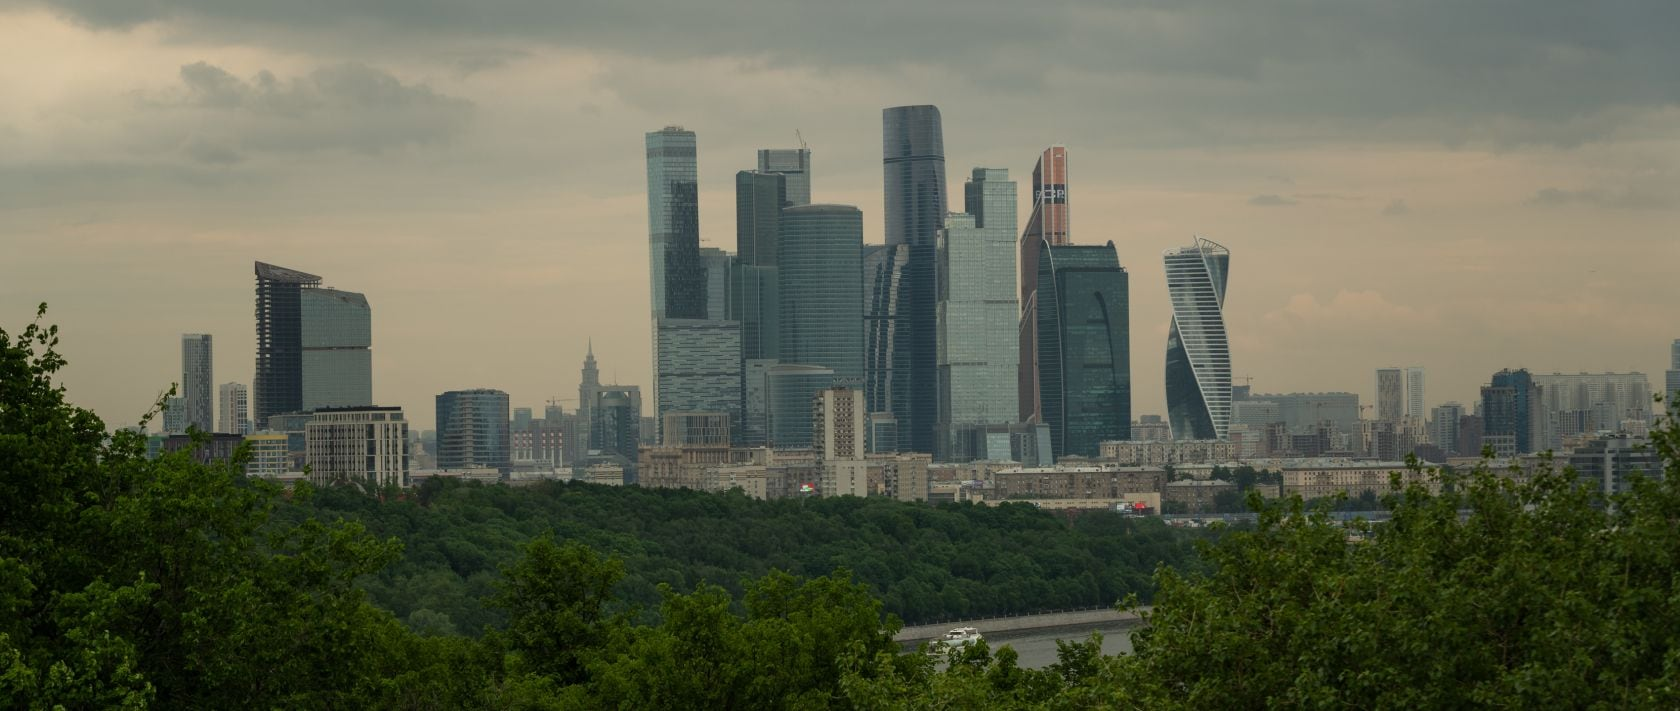 The modern archi­tecture of ­Moscow's financial district offers a striking contrast to the historic city centre.